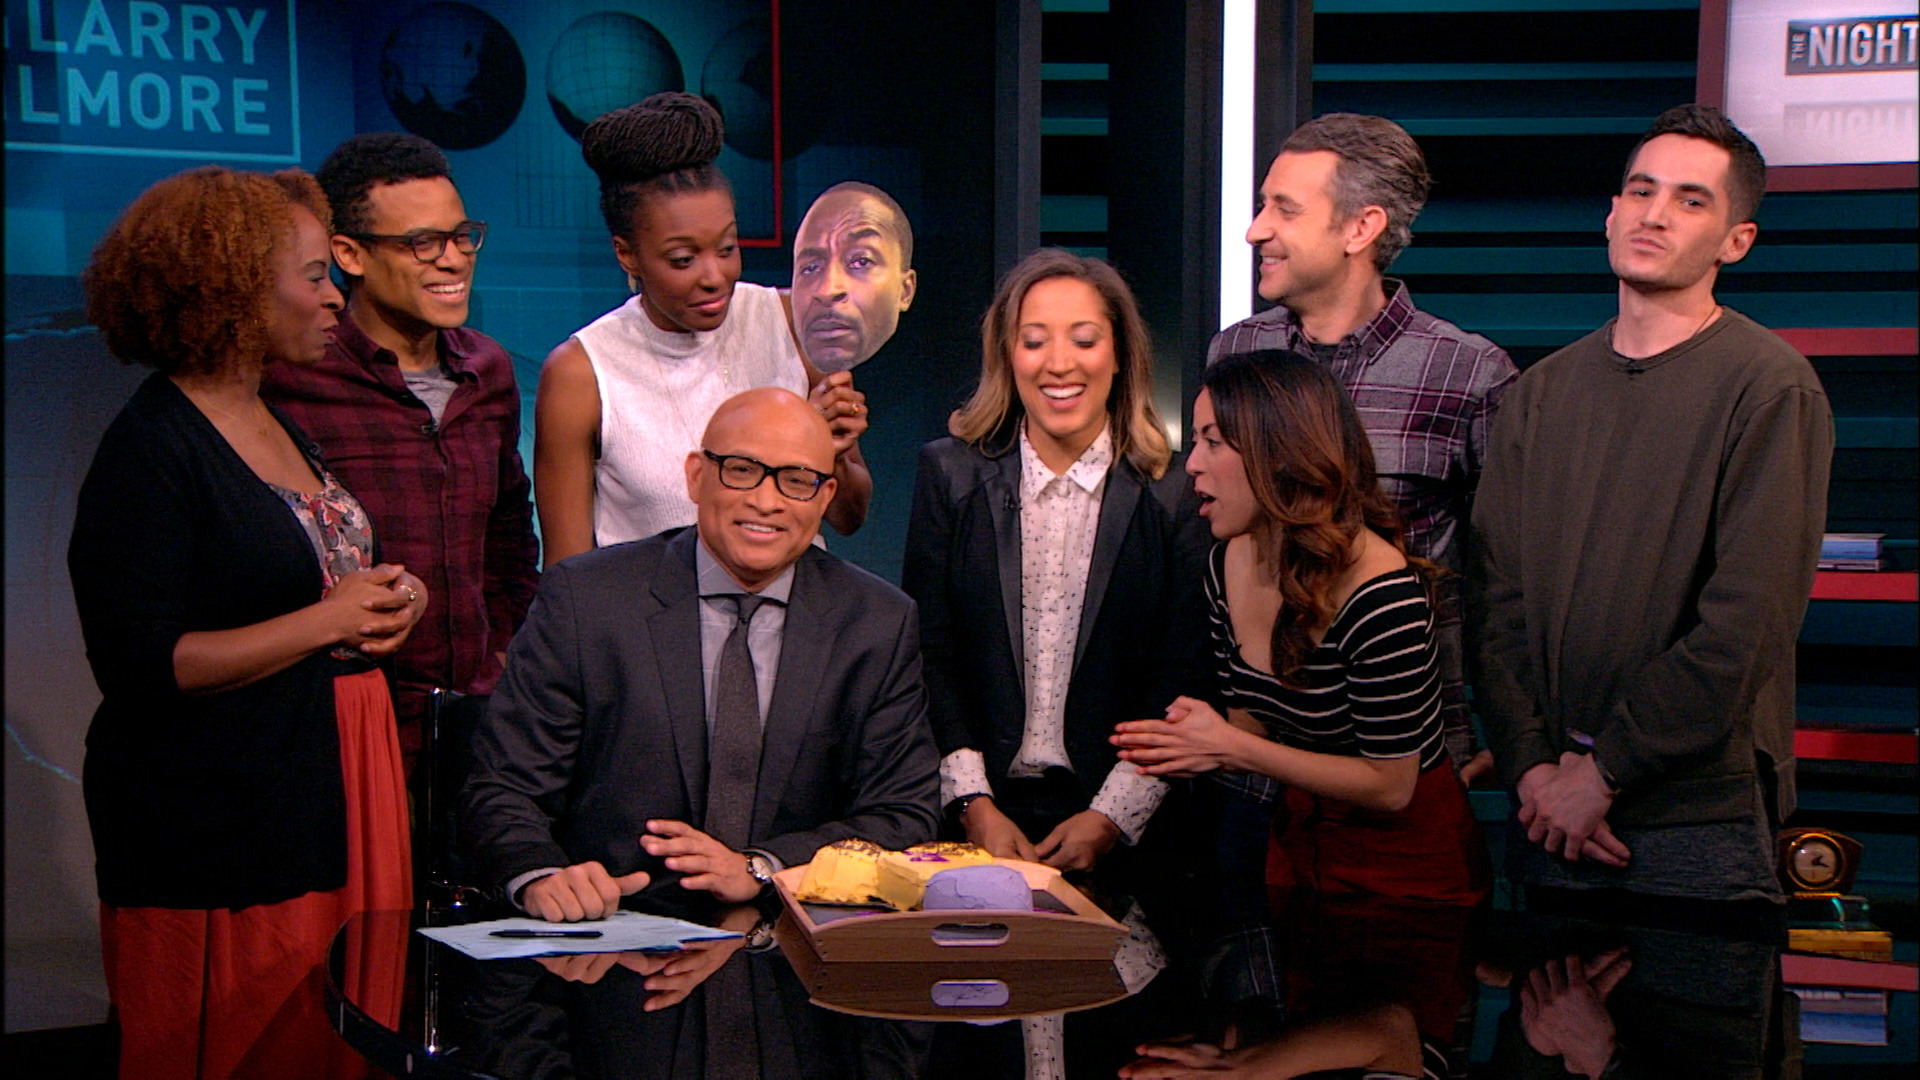 THE NIGHTLY SHOW - LARRY PREPS FOR THE WHITE HOUSE CORRESPONDENTS' DINNER